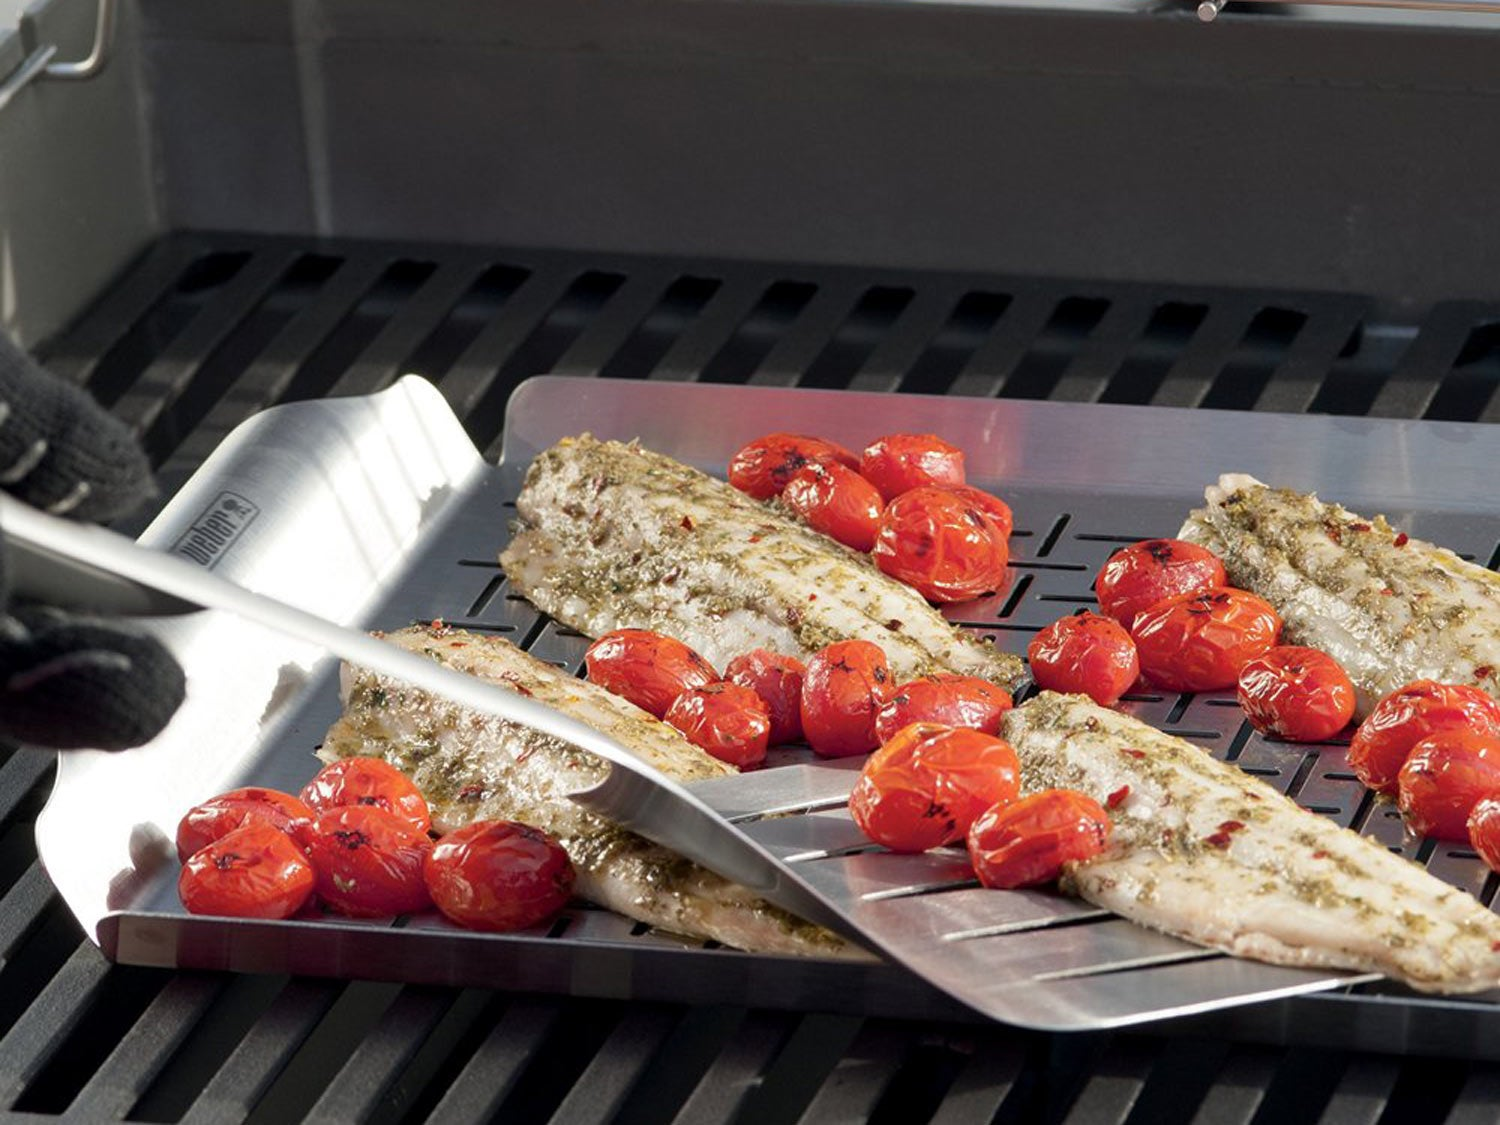 Weber Style 6435 Professional-Grade Grill Pan